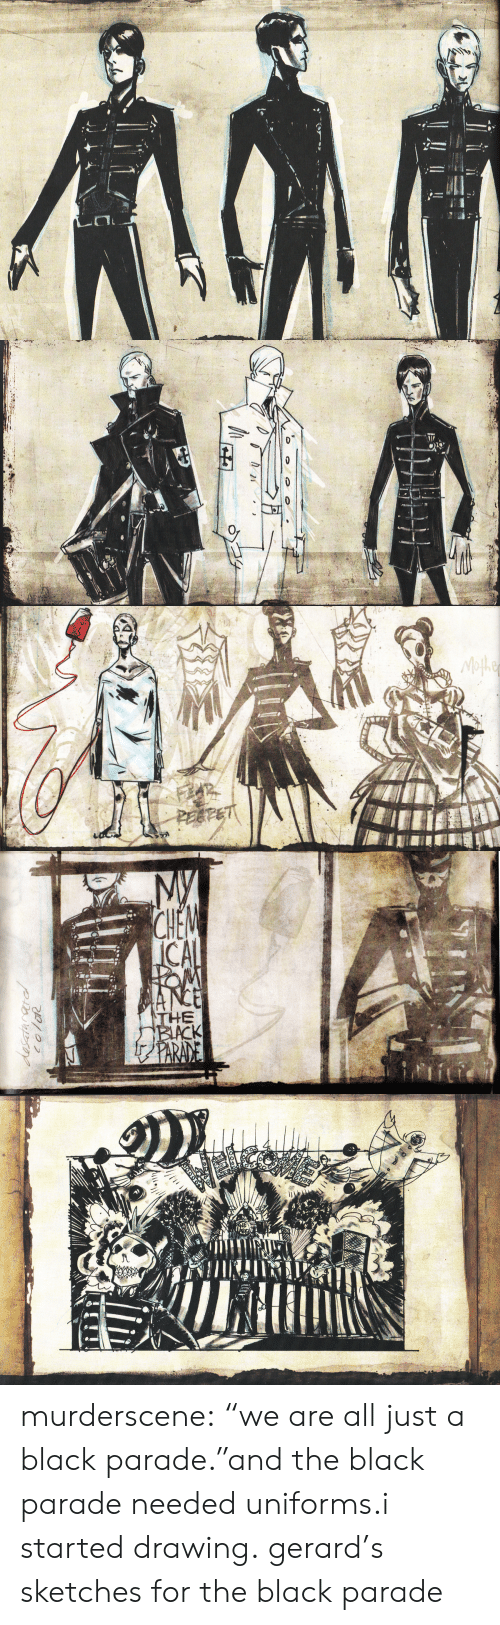 """Parade: Mofhe  PEEFET   My  CHEM  ICAL  OM  MANCE  THE  BIACK  fPARANE  desatarardl  coloR murderscene:  """"we are all just a black parade.""""and the black parade needed uniforms.i started drawing. gerard's sketches for the black parade"""